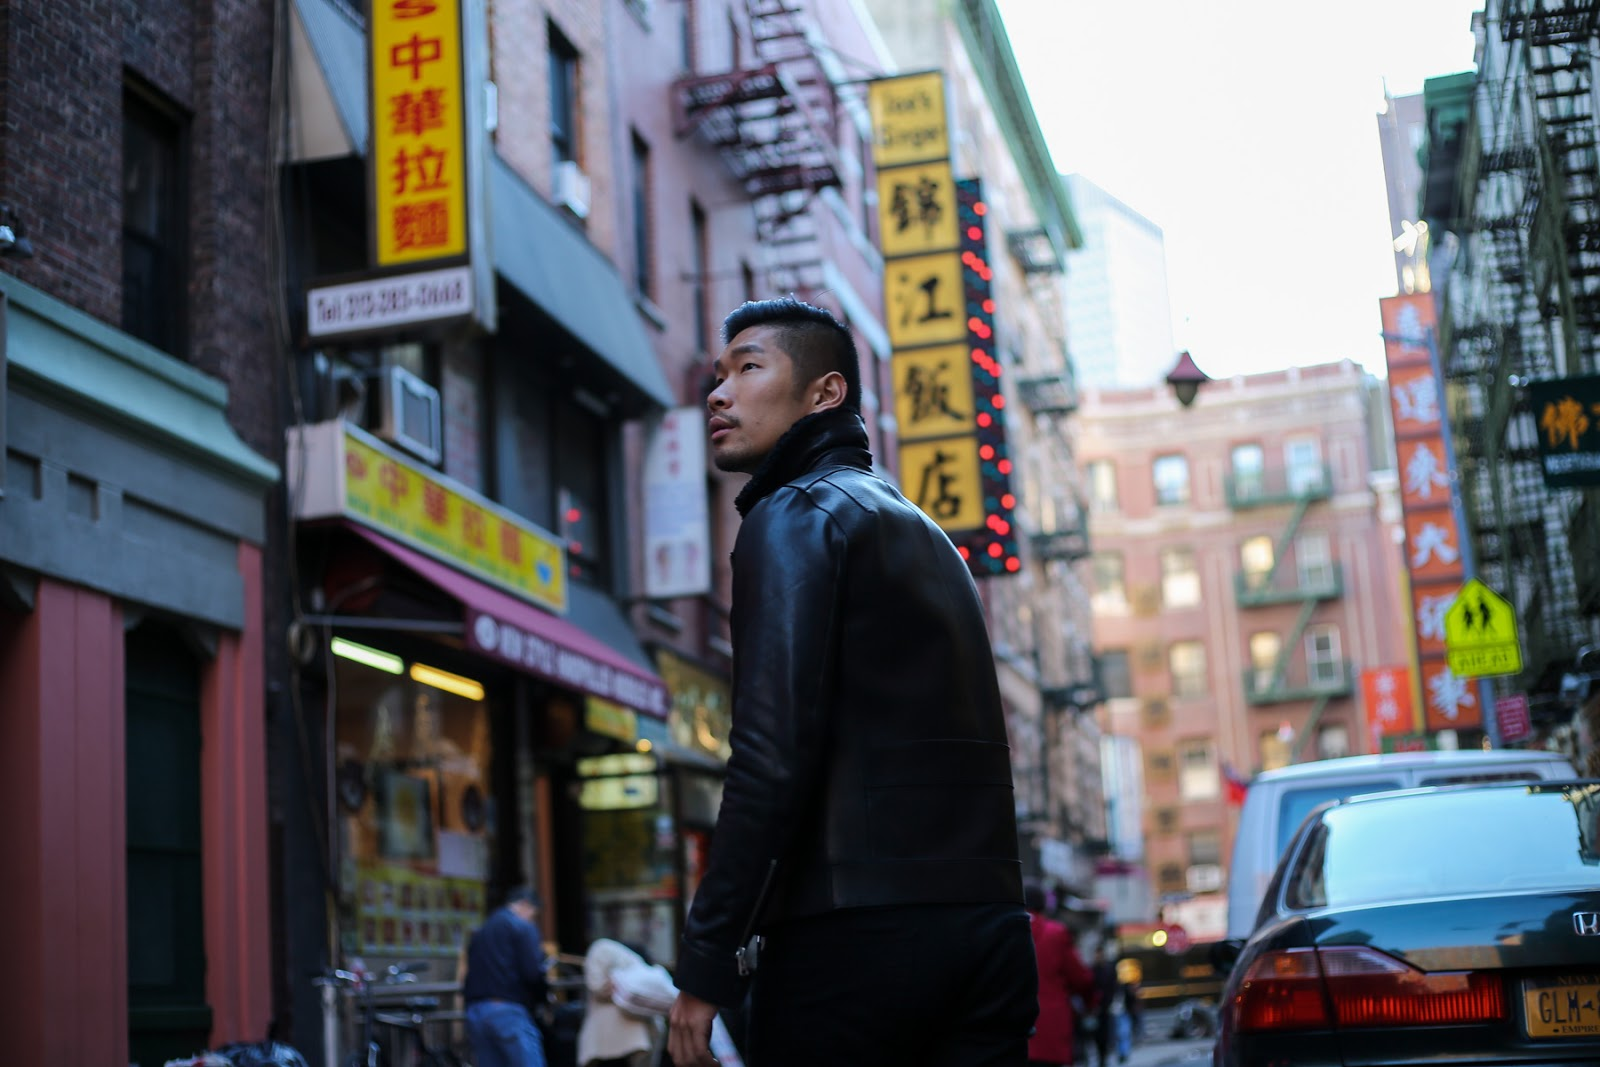 Leo Chan, Fashion Blogger in NYC, responds to Fox News Chinatown racist segment